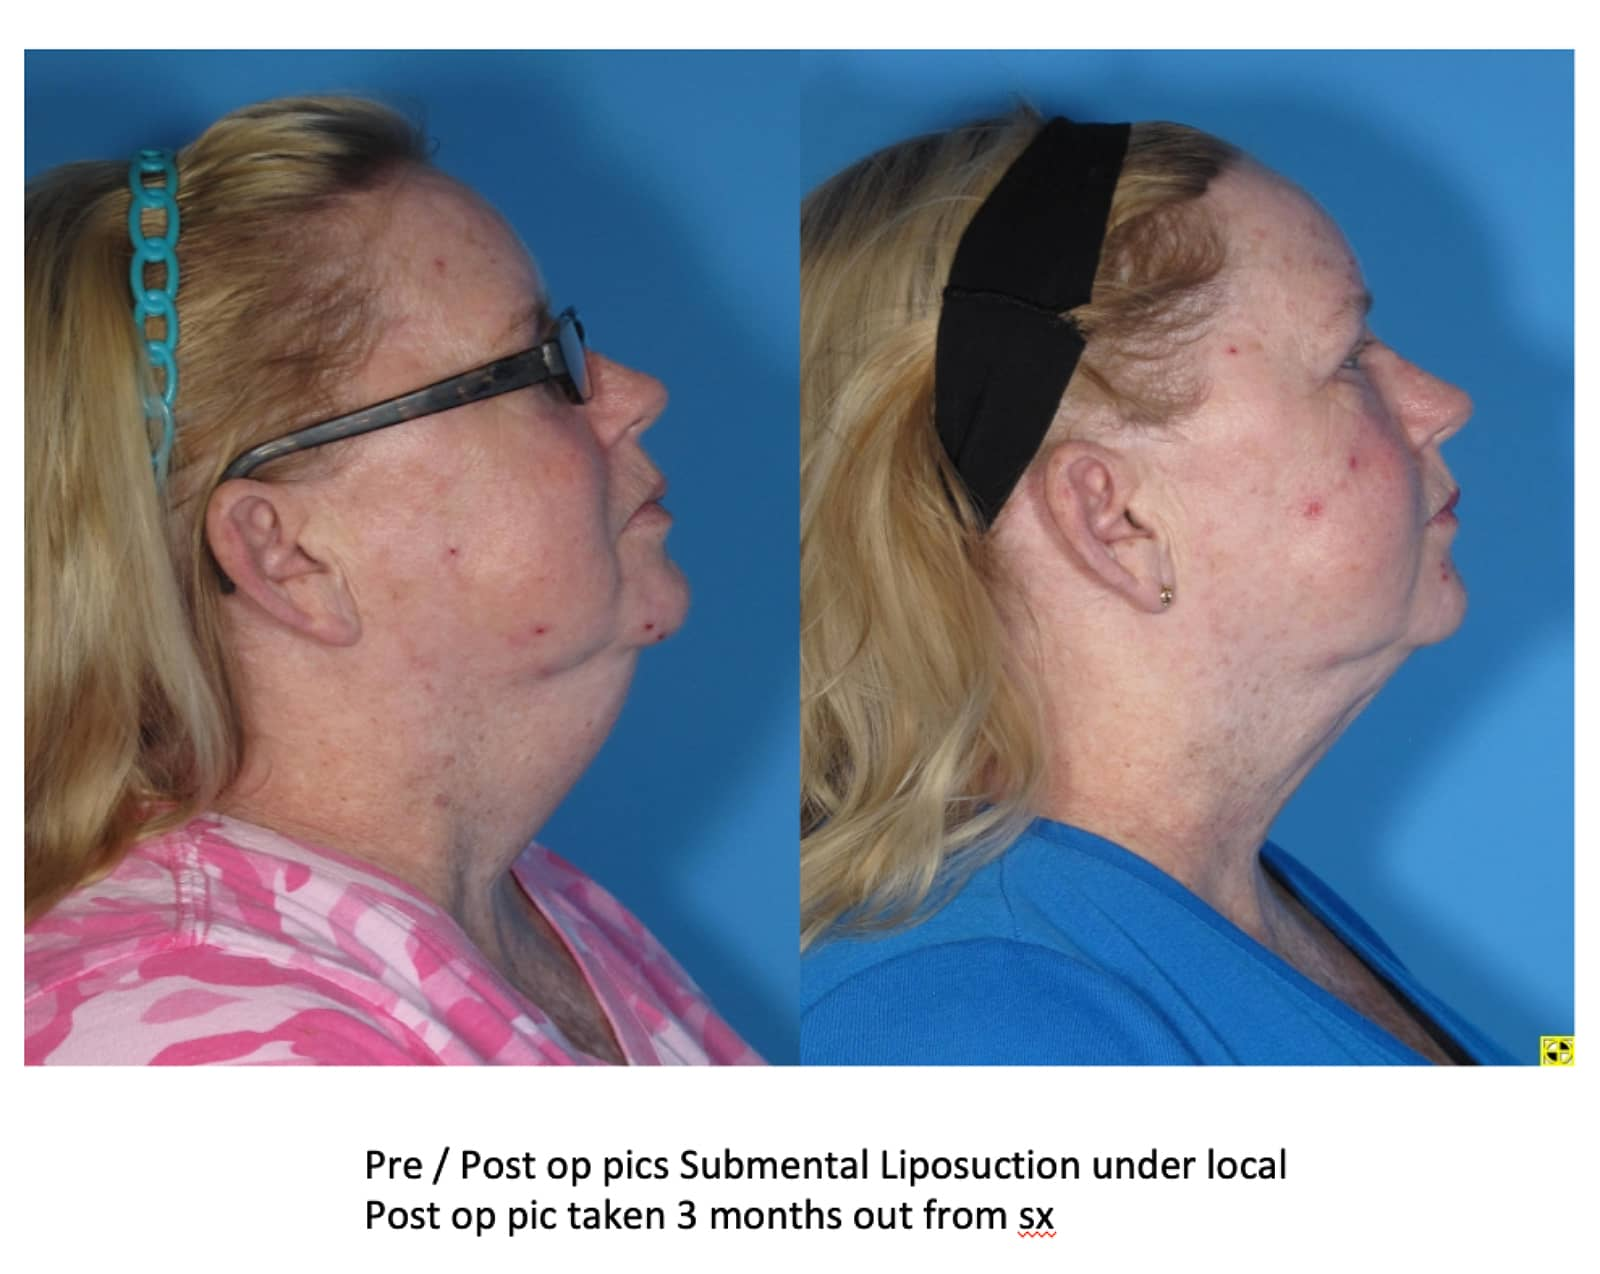 submental liposuction